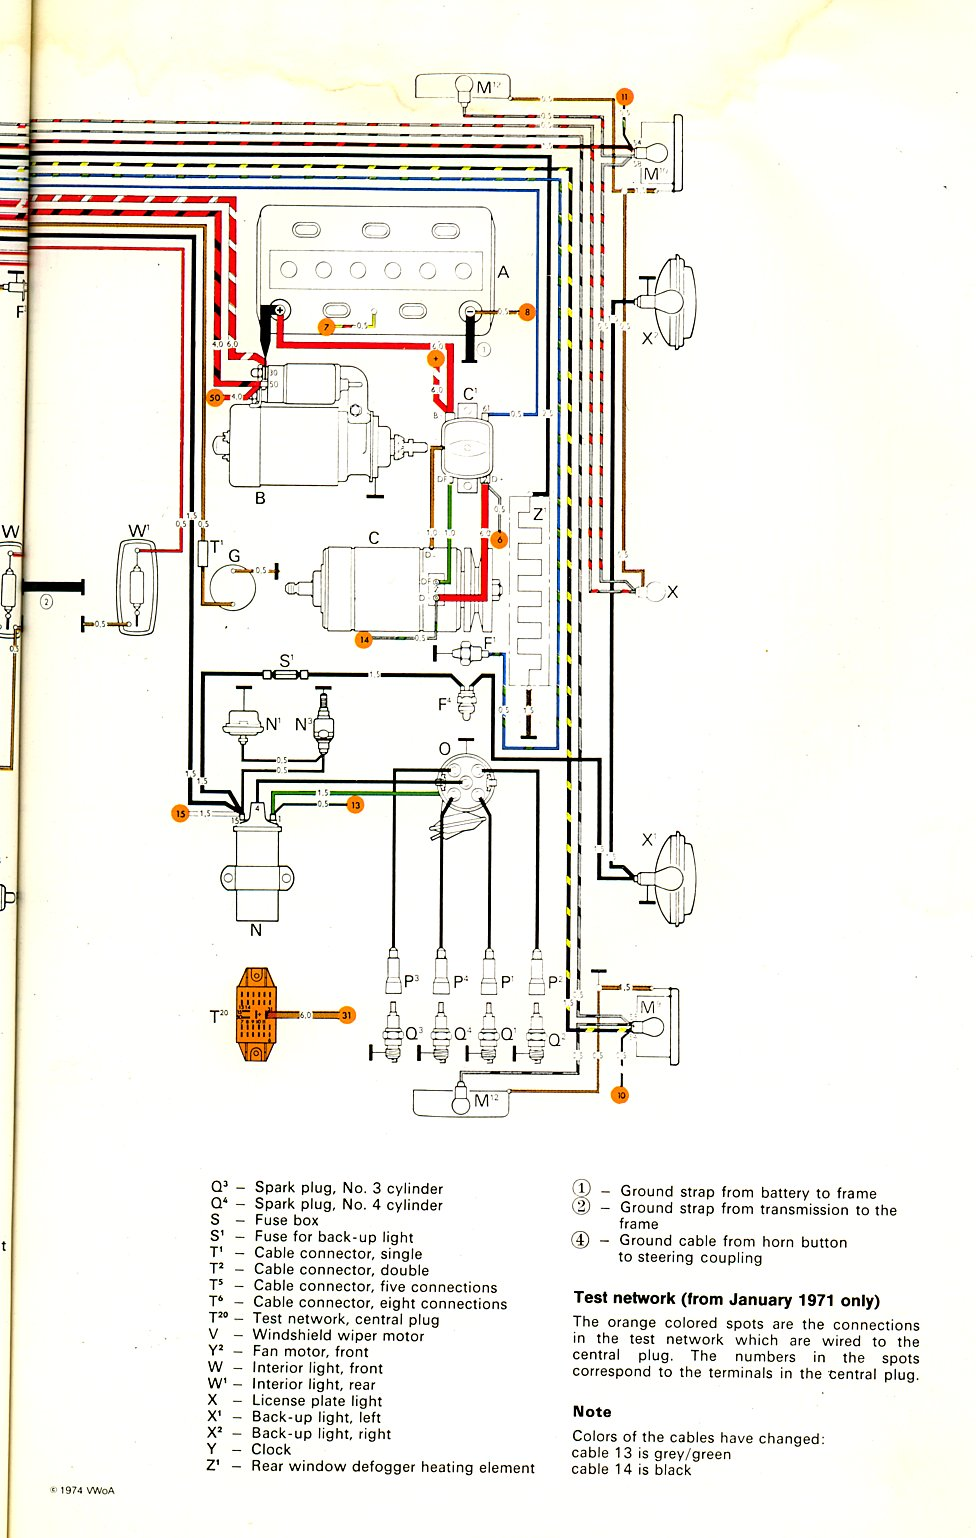 Type 2 Wiring Diagrams Basic Brake Light Diagram